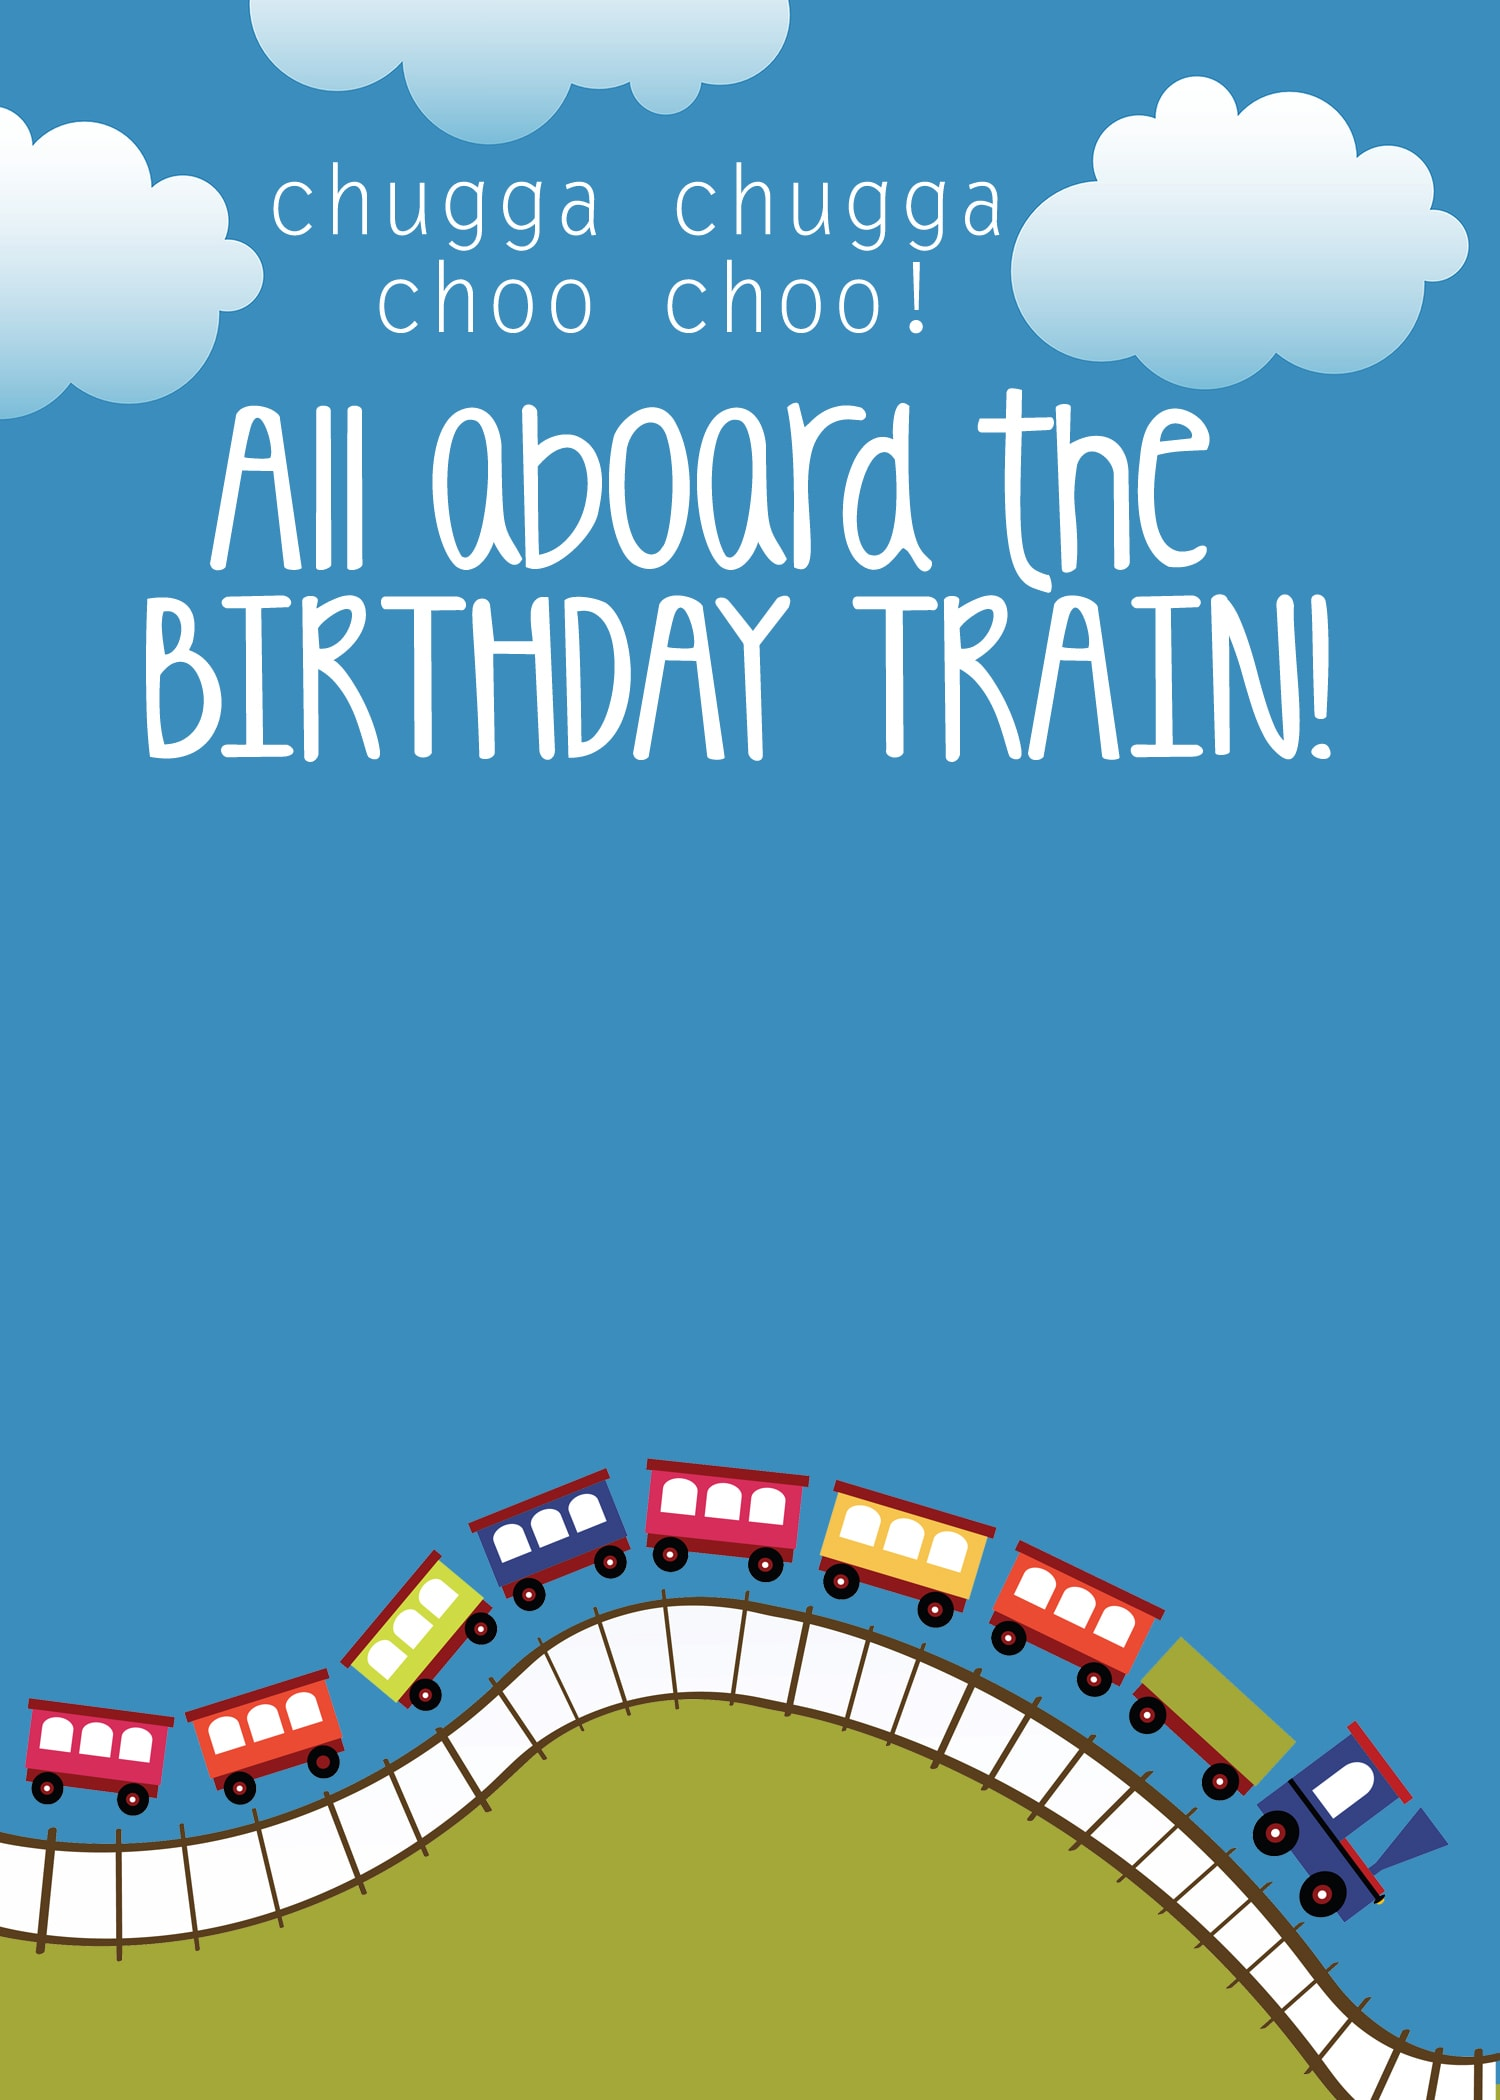 Https://howtonestforless.com/wp Content/uploads/2014/03/train Birthday Party  Invitation Template  Free Birthday Party Invitation Template